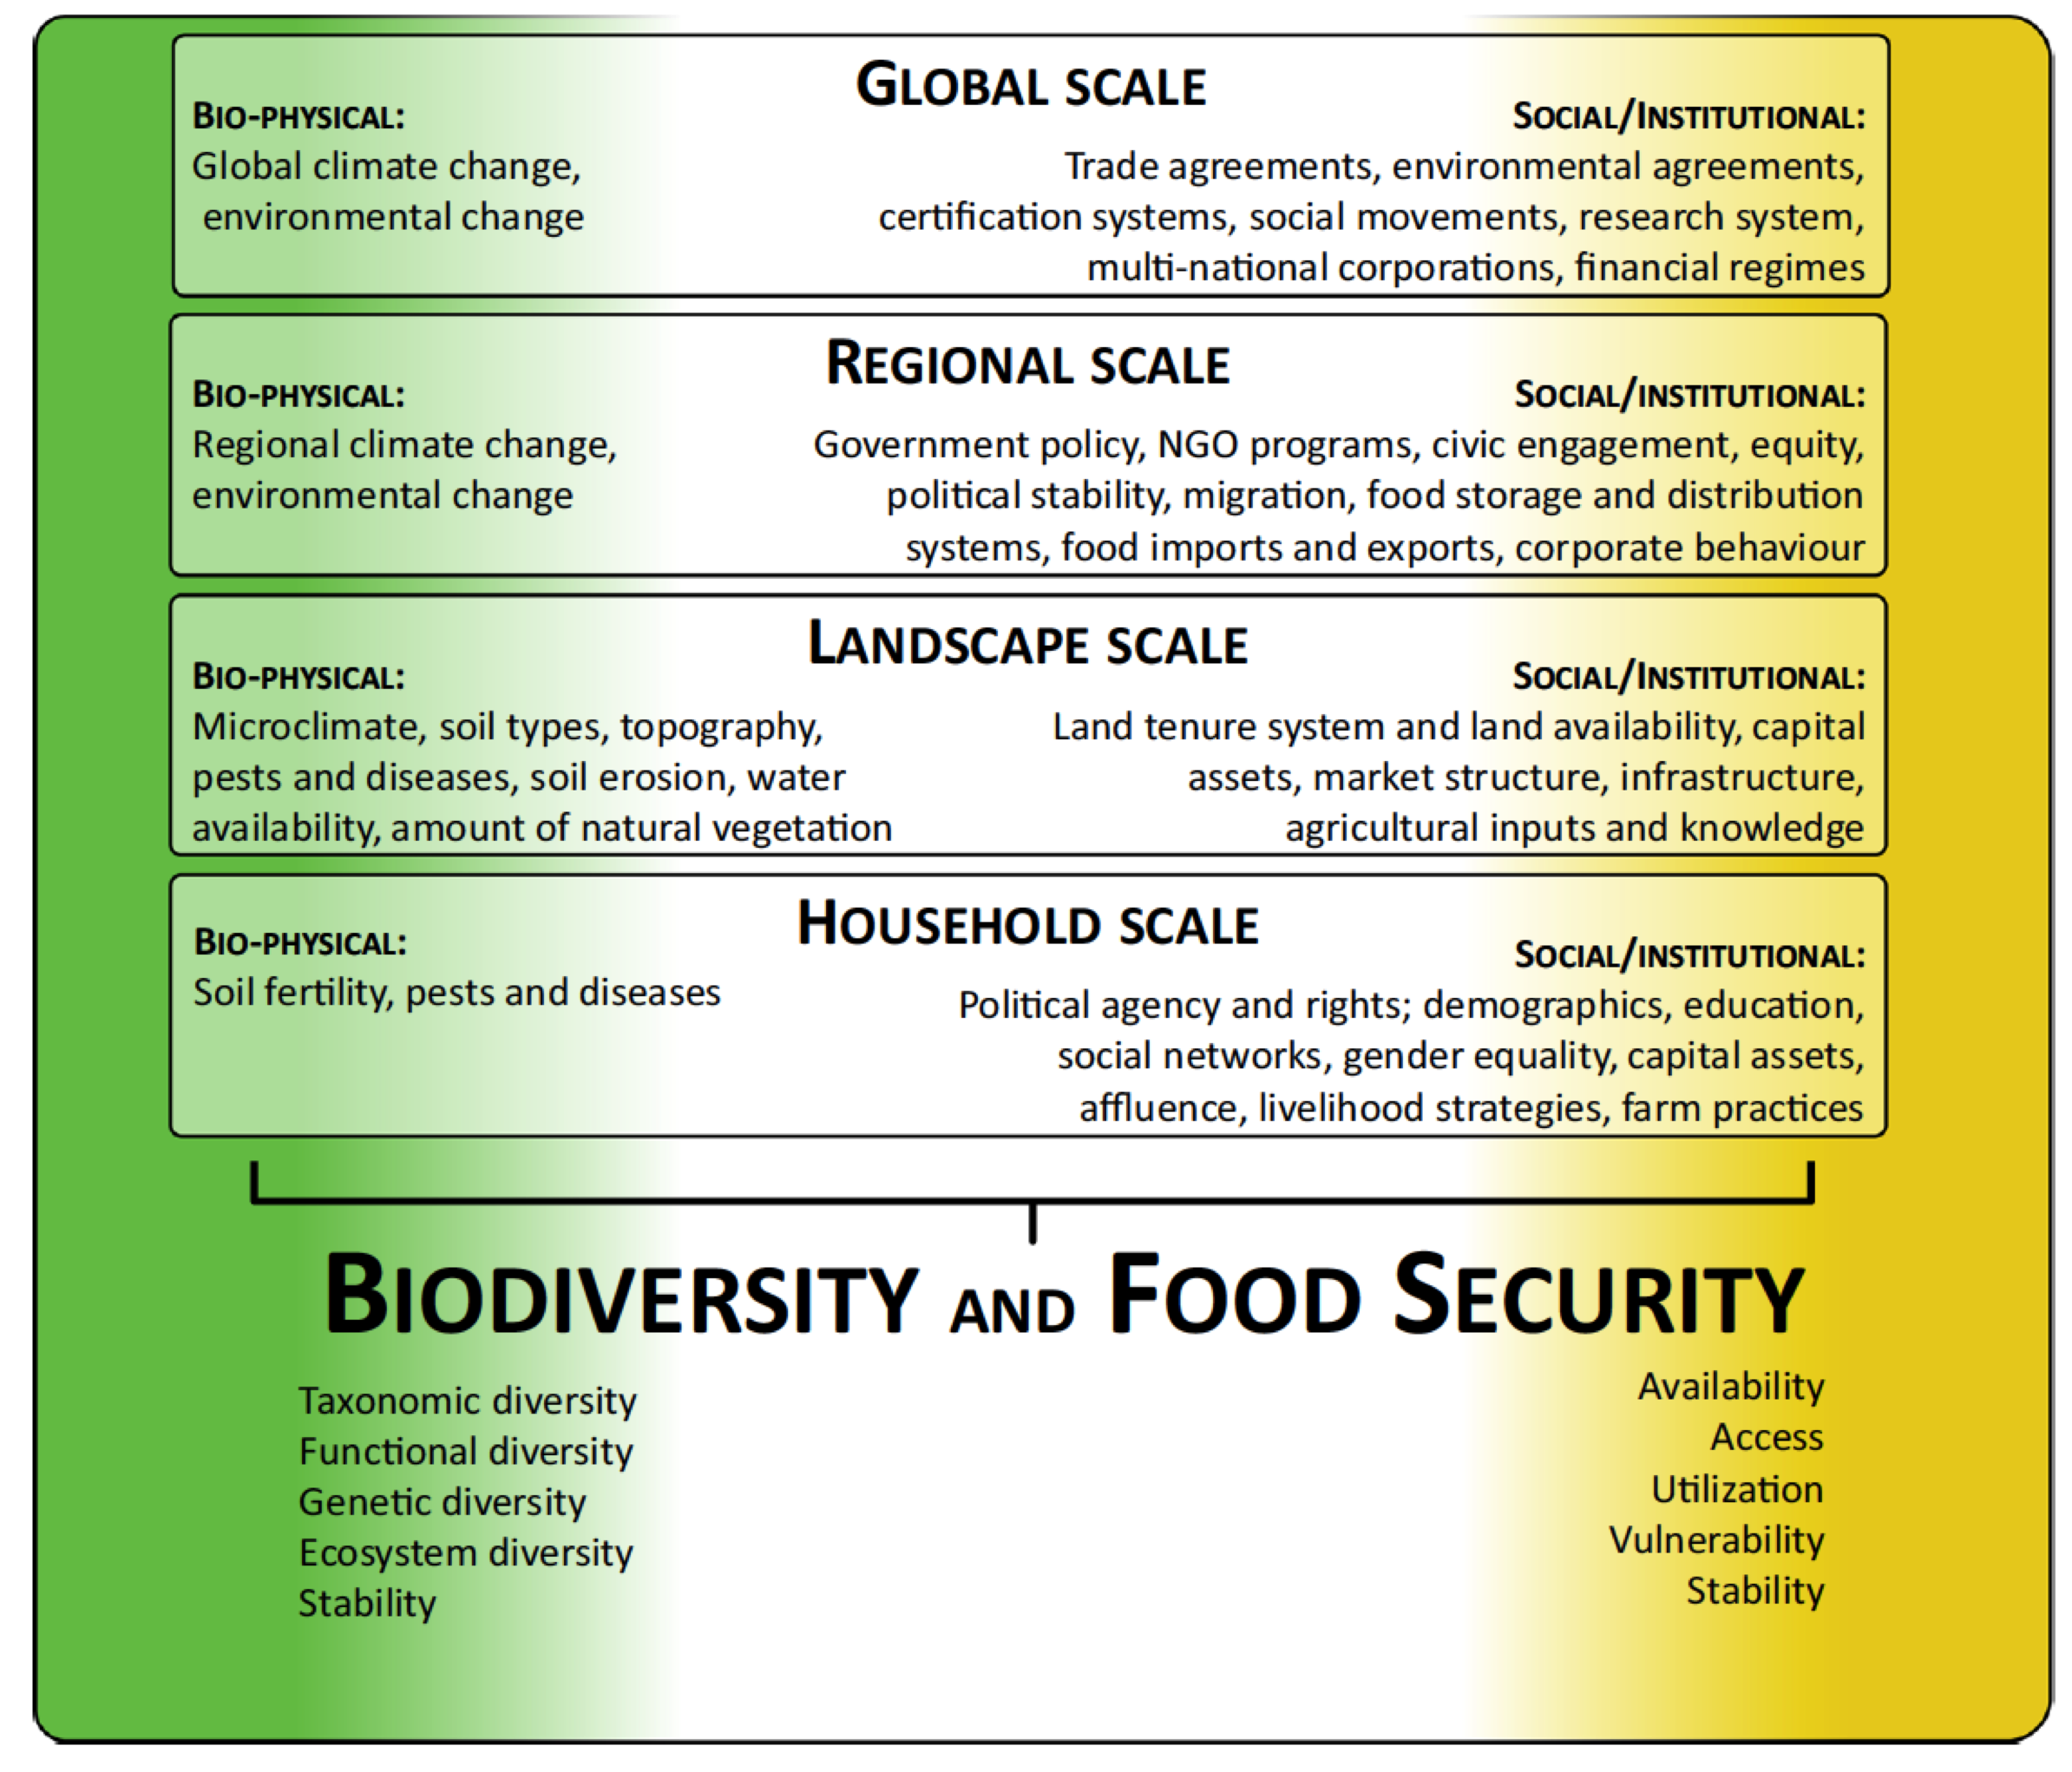 Food security in society